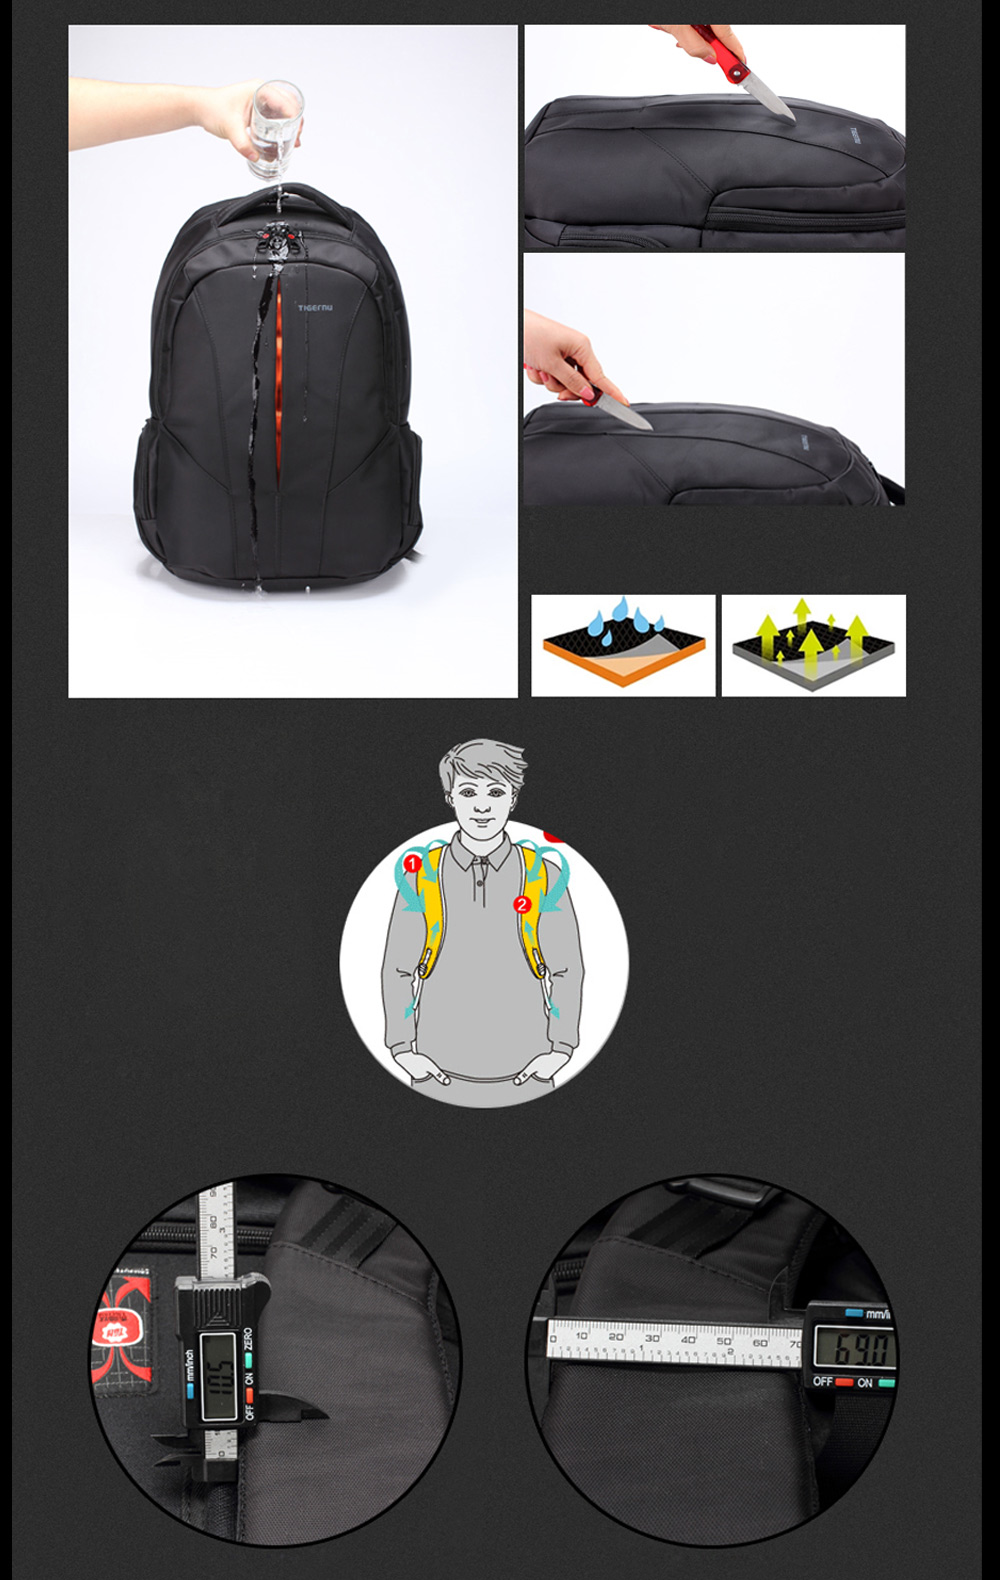 Tigernu T - B3105B Water-resistant Nylon 30L Business Backpack Bag for 15 inch Laptop